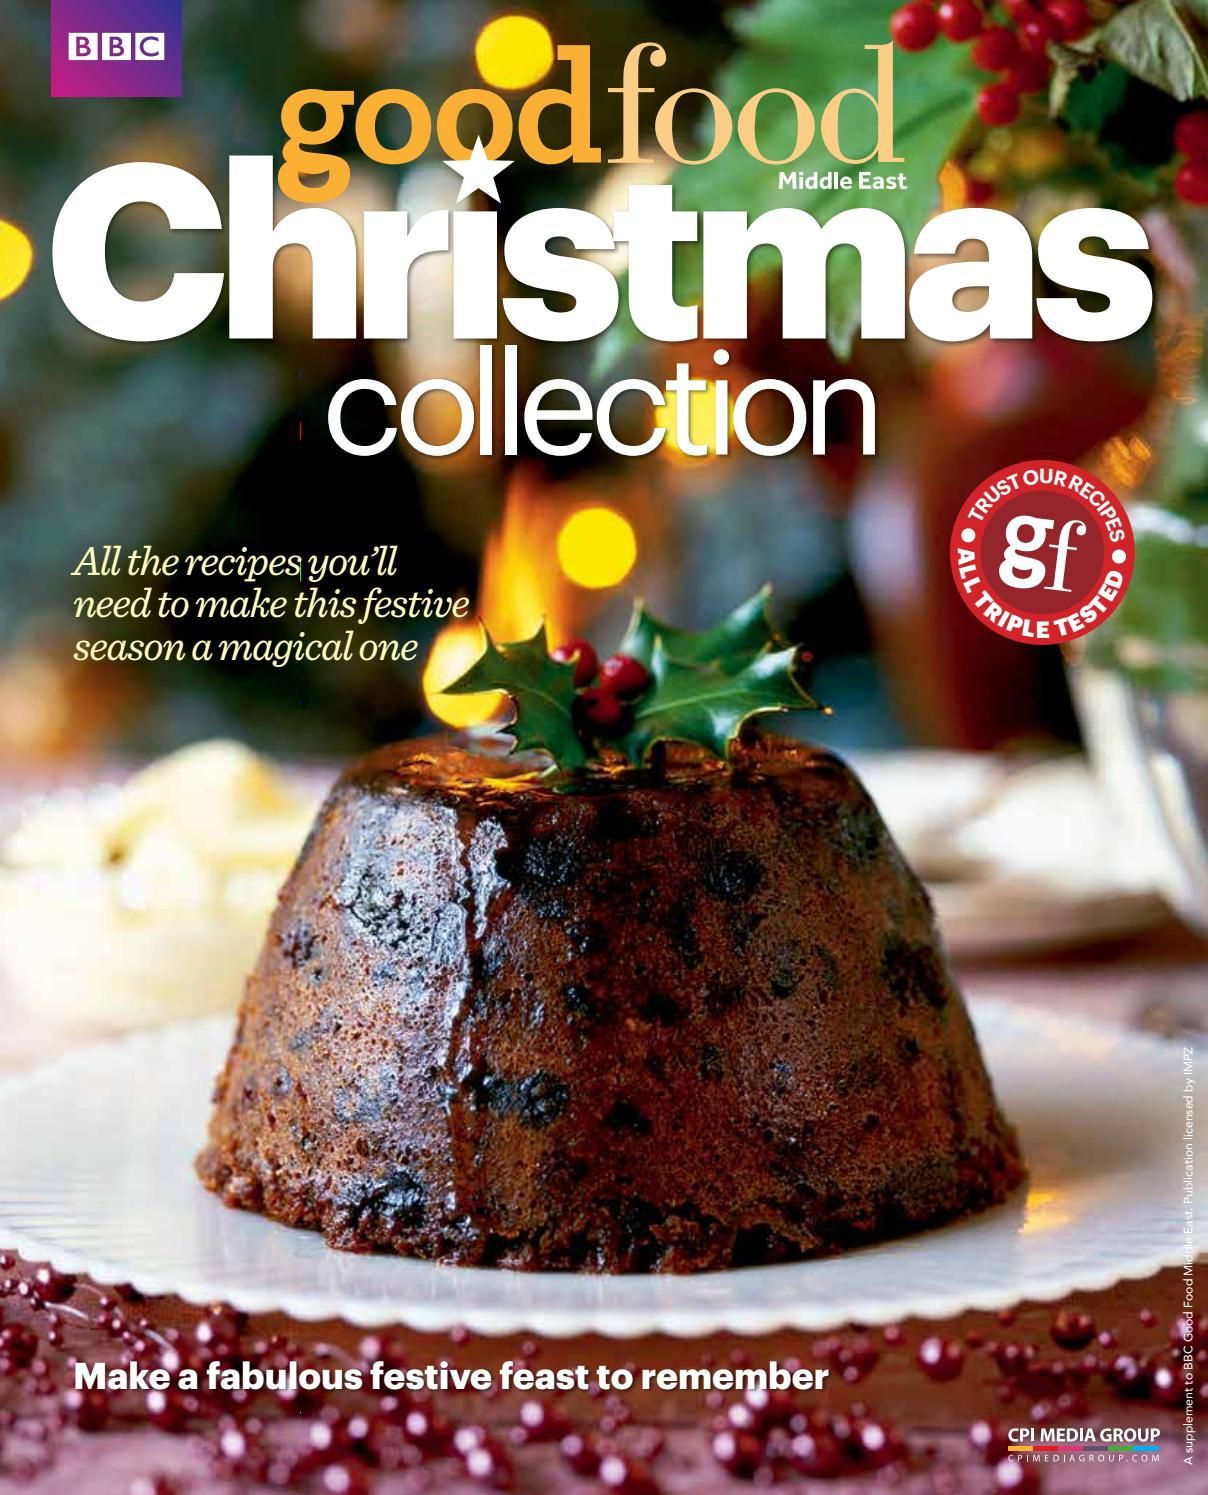 Bbc good food middle east christmas collection 2016 middle east bbc good food middle east christmas collection 2016 forumfinder Images